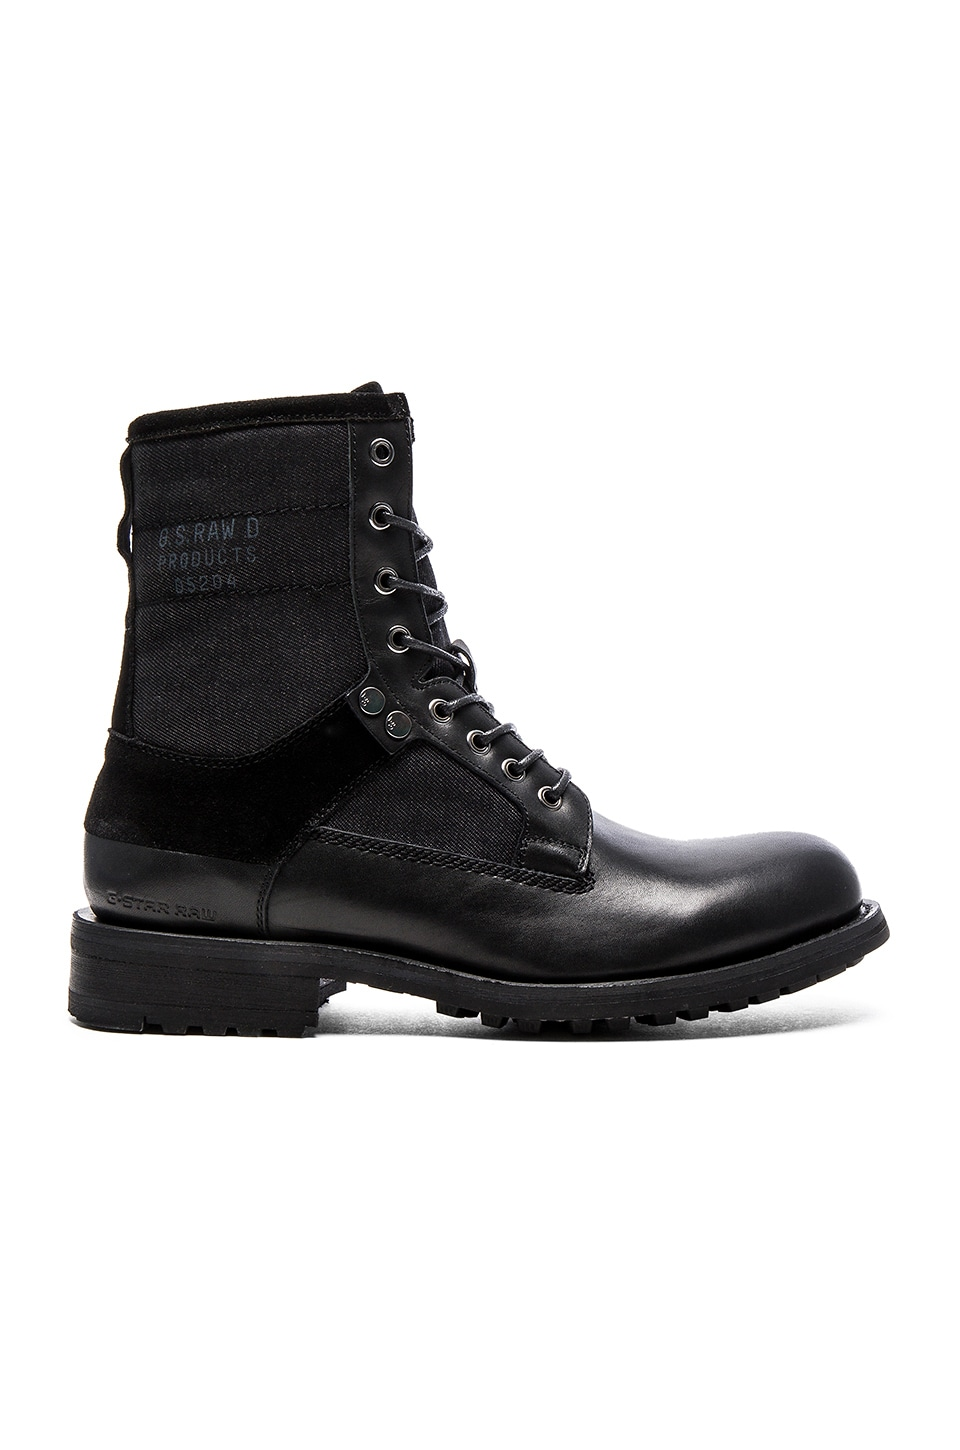 G-Star Patton V Marker Mix in Black Leather Denim